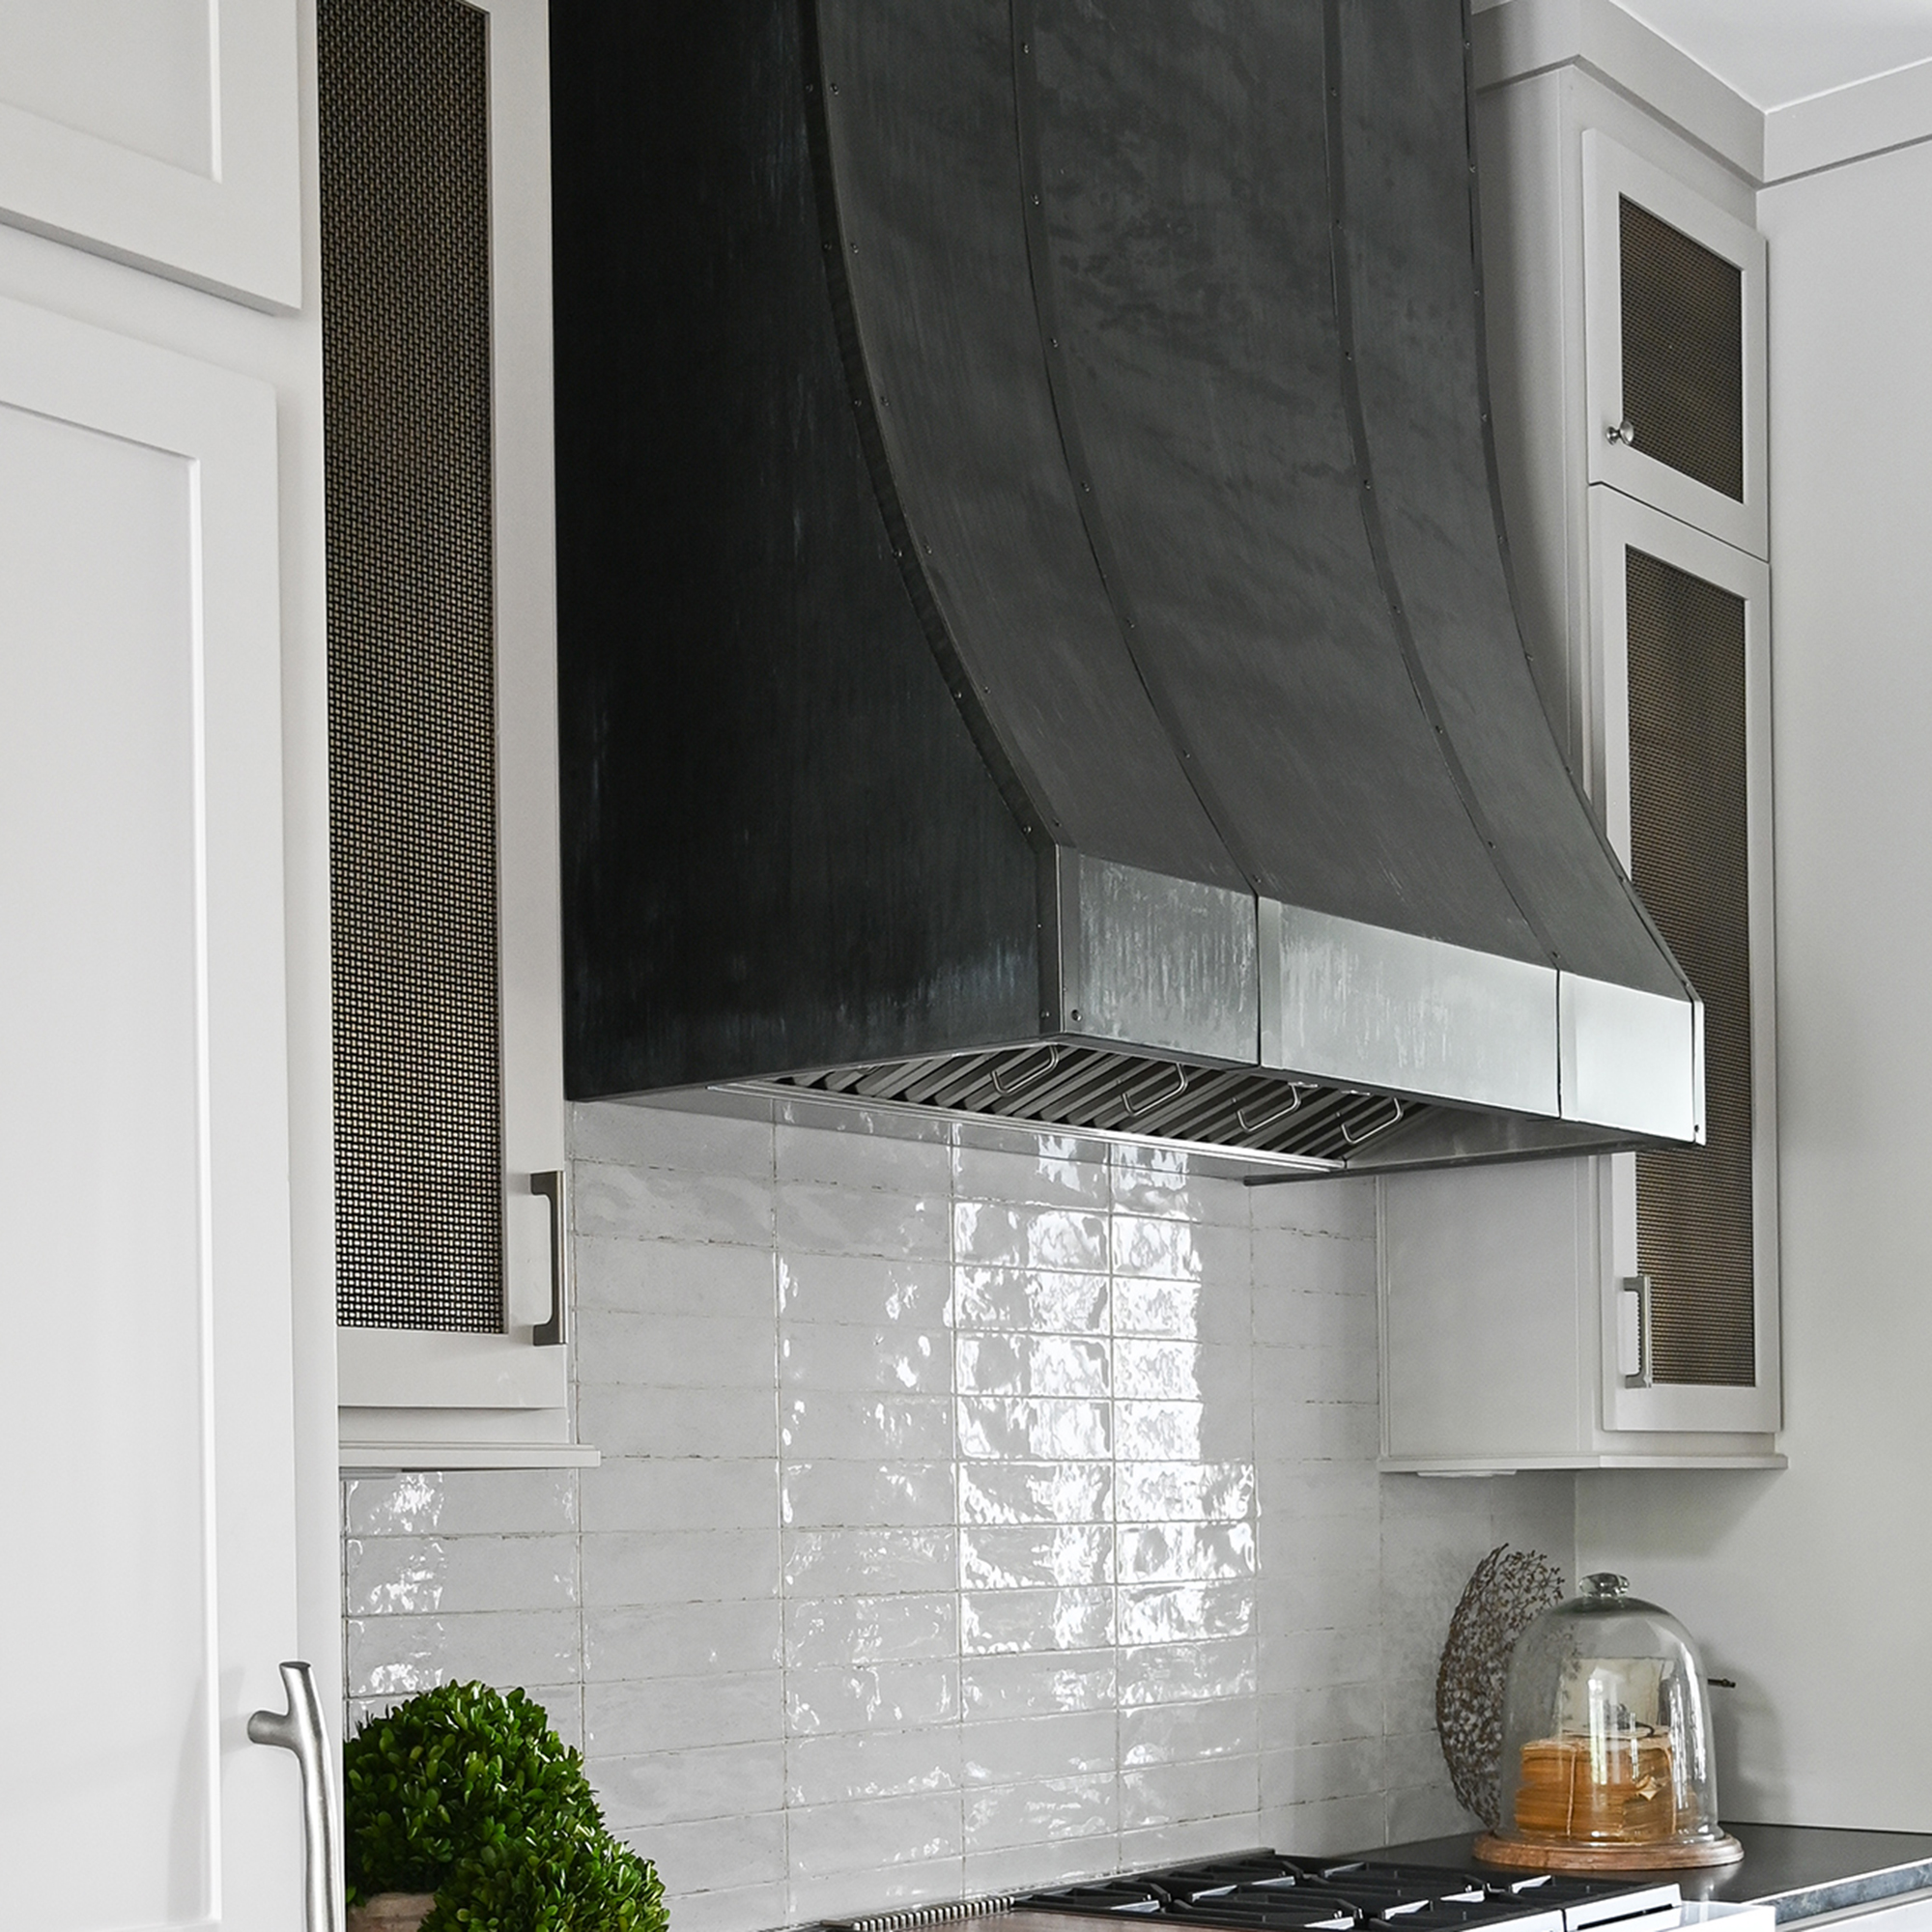 Cabinets filled with woven wire mesh S-12 compliment the metal range hood.